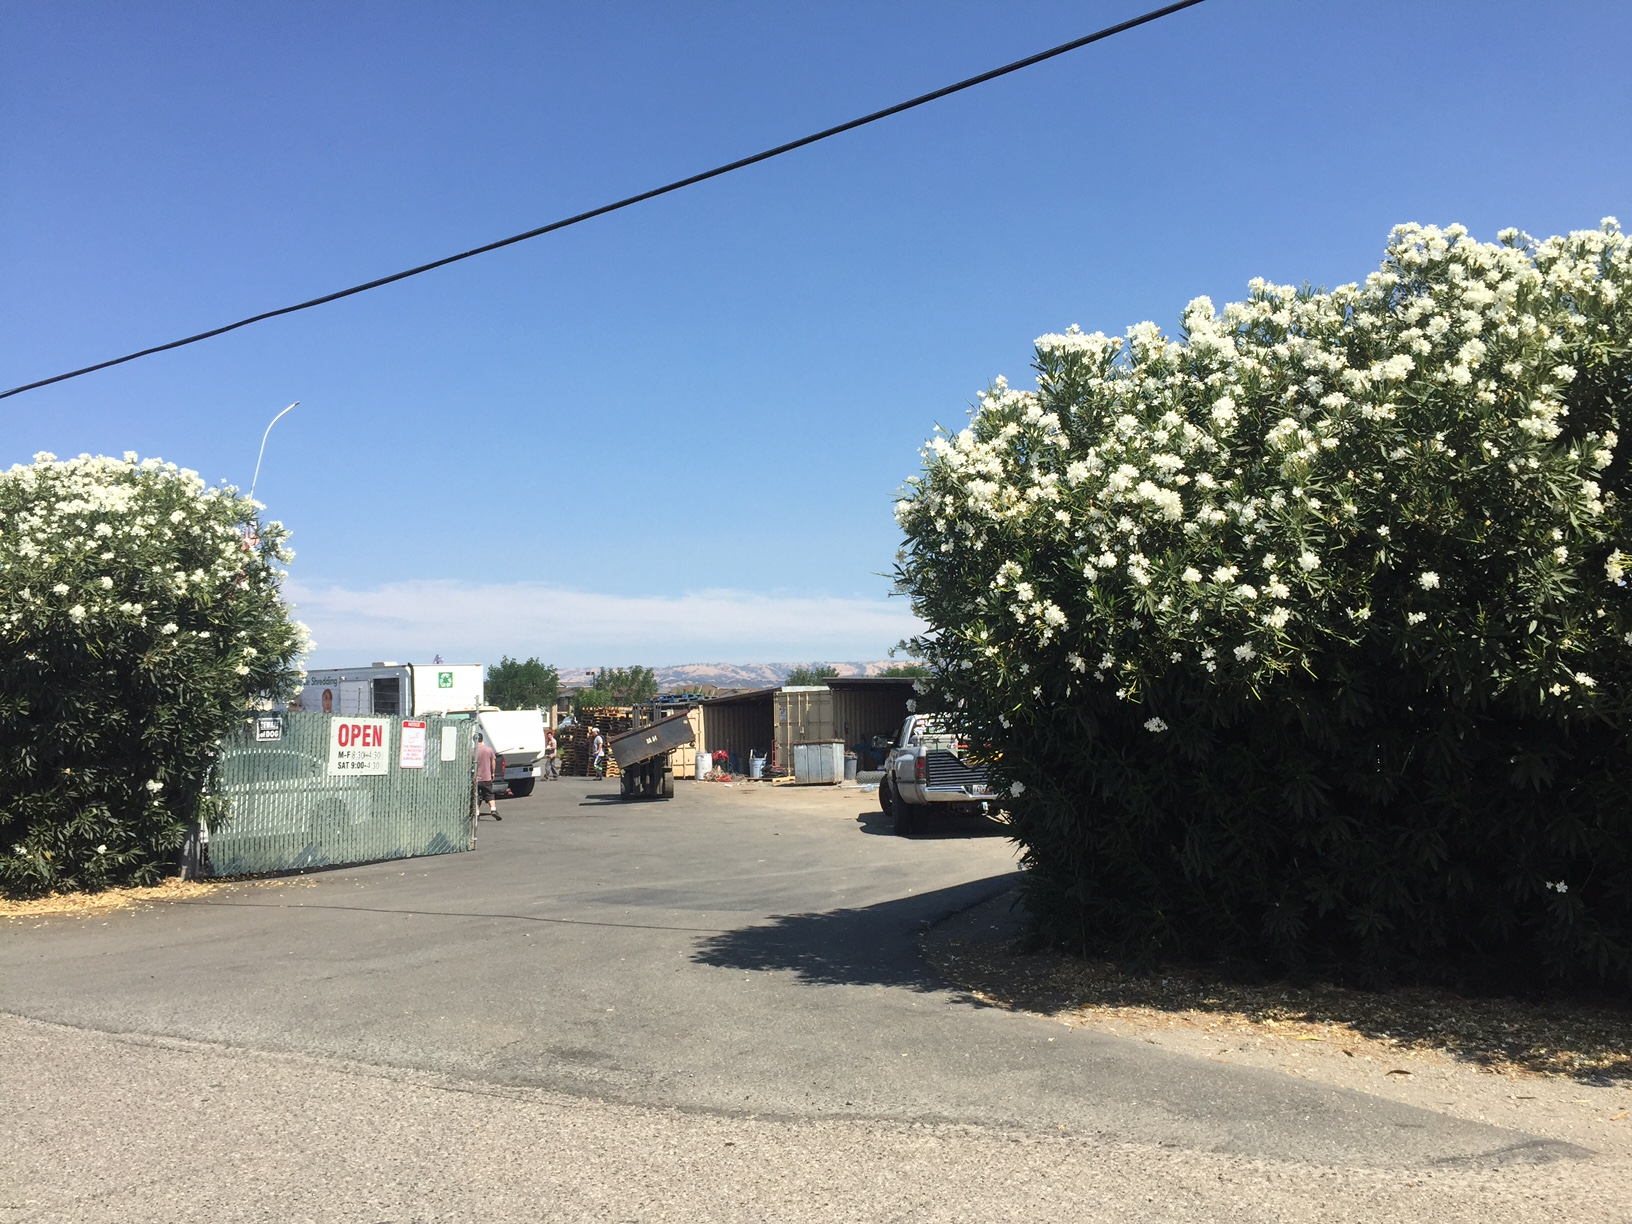 Rare opportunity- Acquire recycling & Land 4 Acre